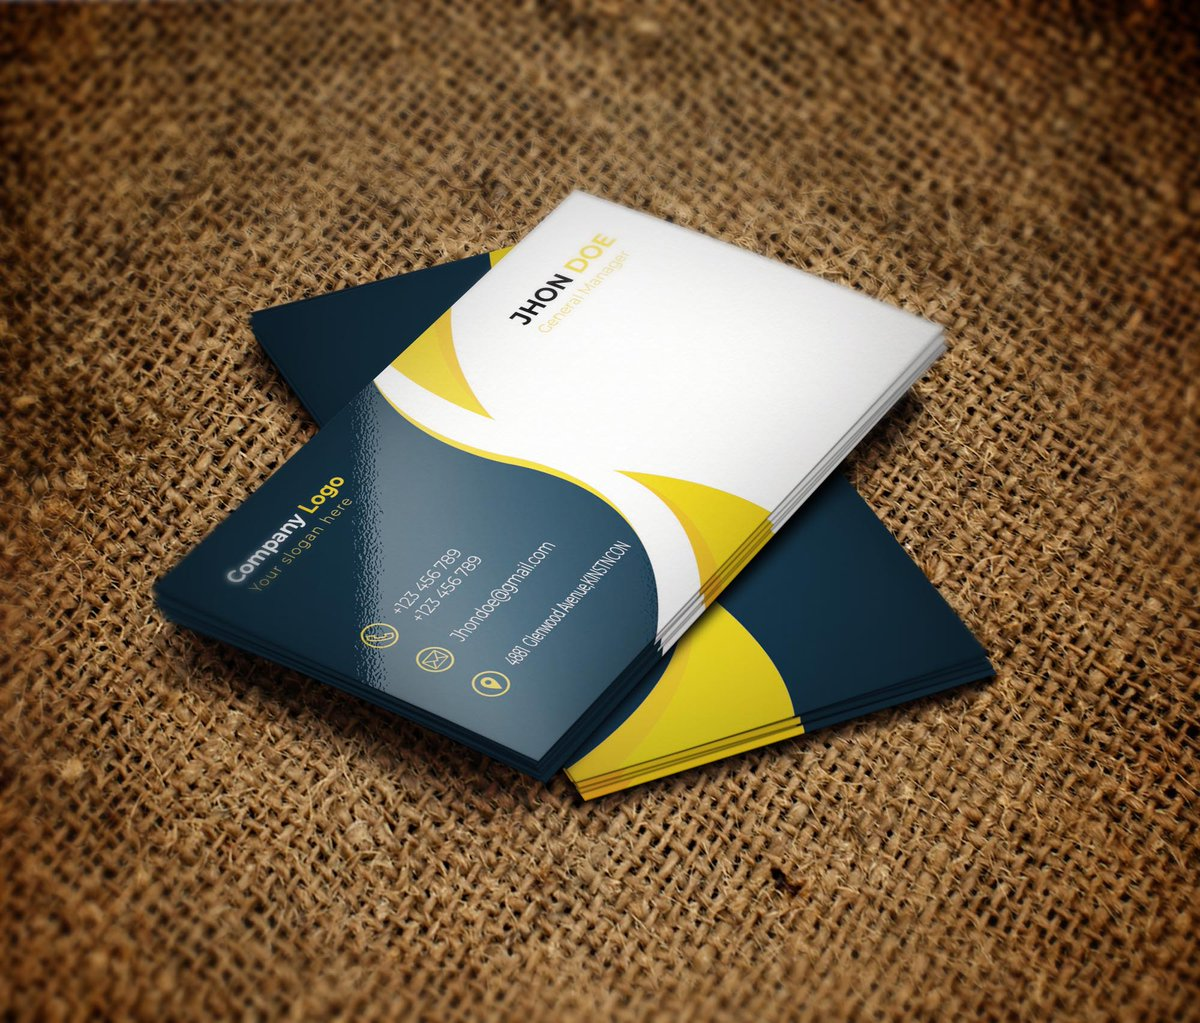 Are you looking for a Buisness card Designer? contact me: https://t.co/EVuRv1x6wo #Bangladesh #businesscards  #GraphicDesign #business https://t.co/mcg3nfe404